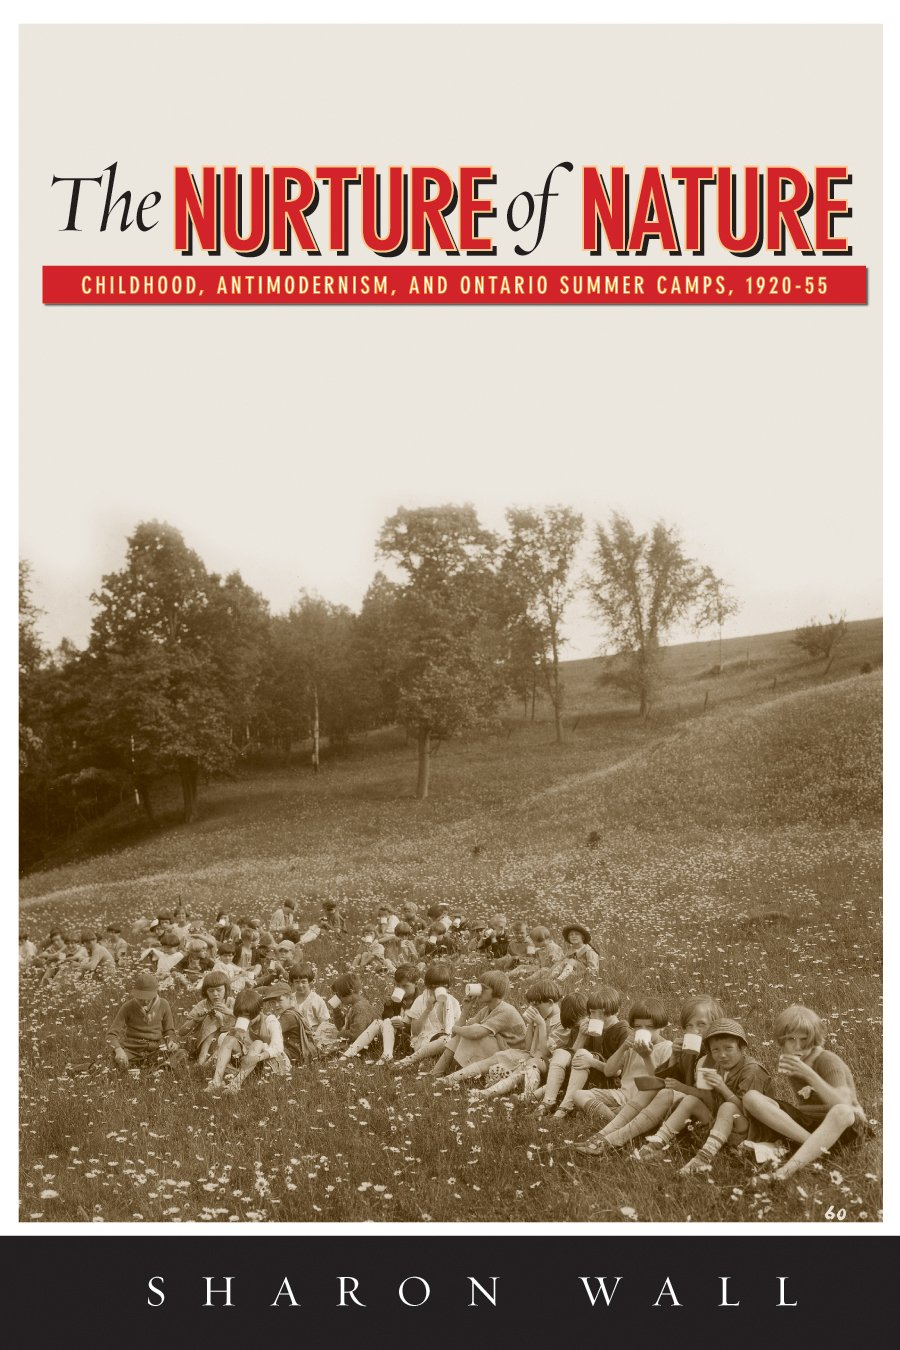 The Nurture of Nature: Childhood, Antimodernism, and Ontario Summer Camps, 1920-55 (Nature/History/society)